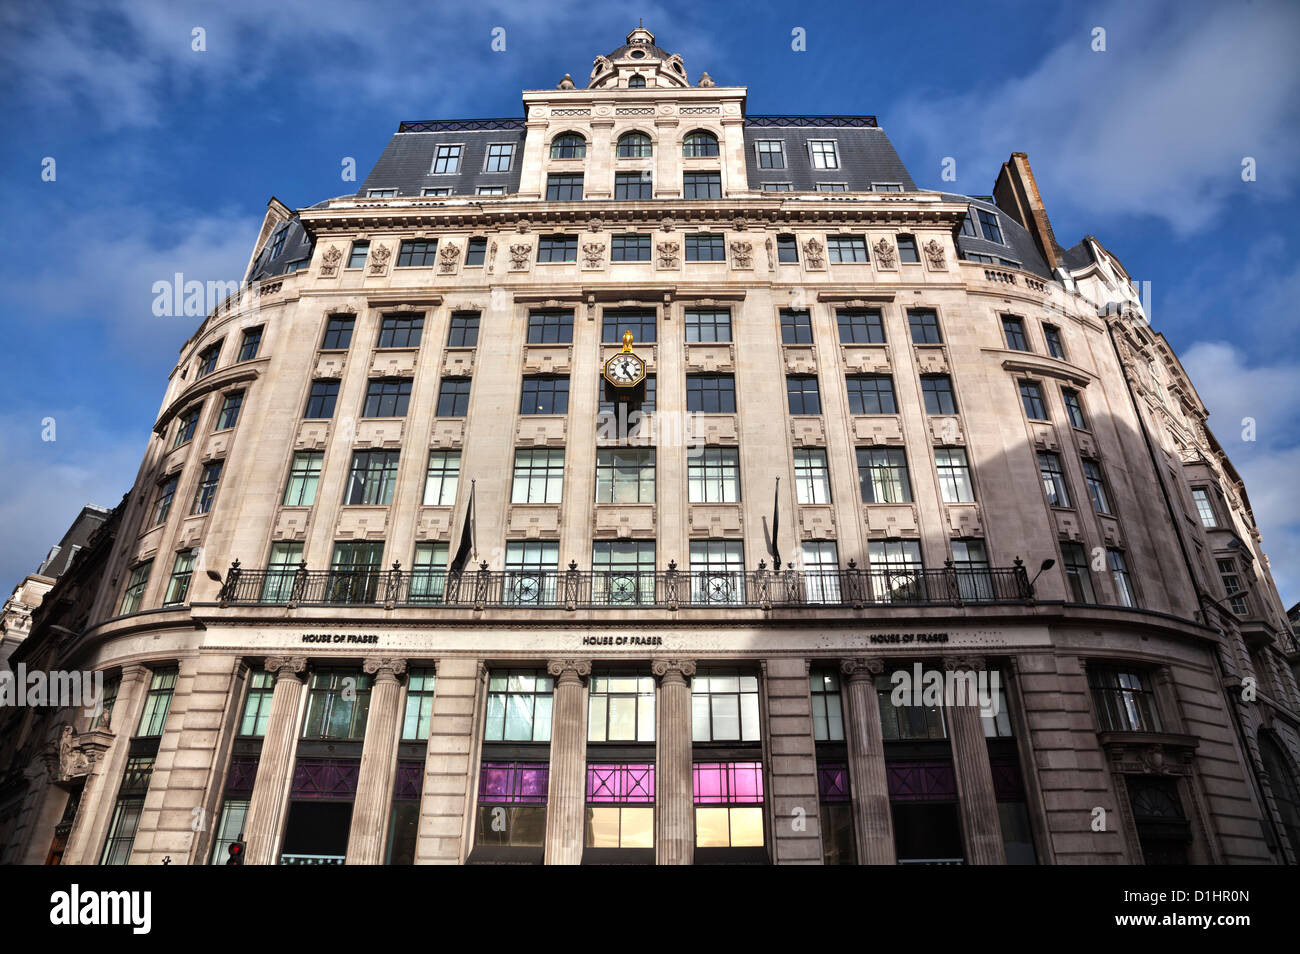 House of Fraser department store on north end of London Bridge - Stock Image